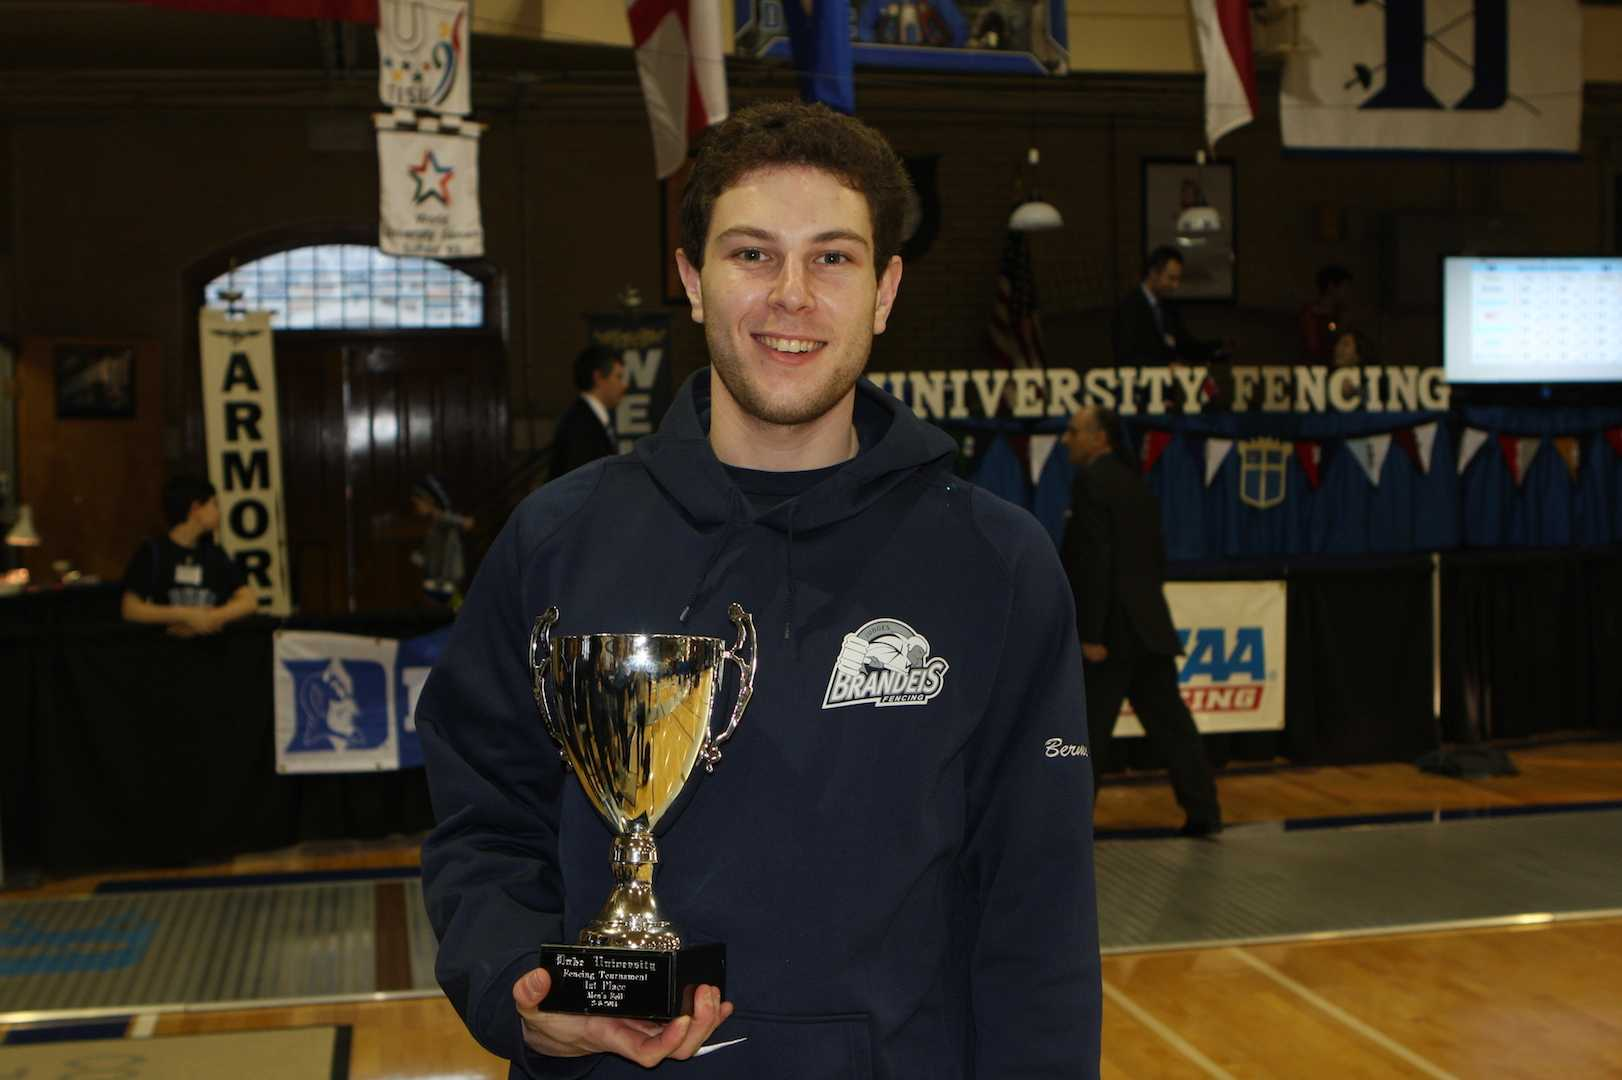 Noah Berman held the tournament trophy he helped Brandeis University win at a fencing meet hosted by Duke University. Photo by Stuart Berman.